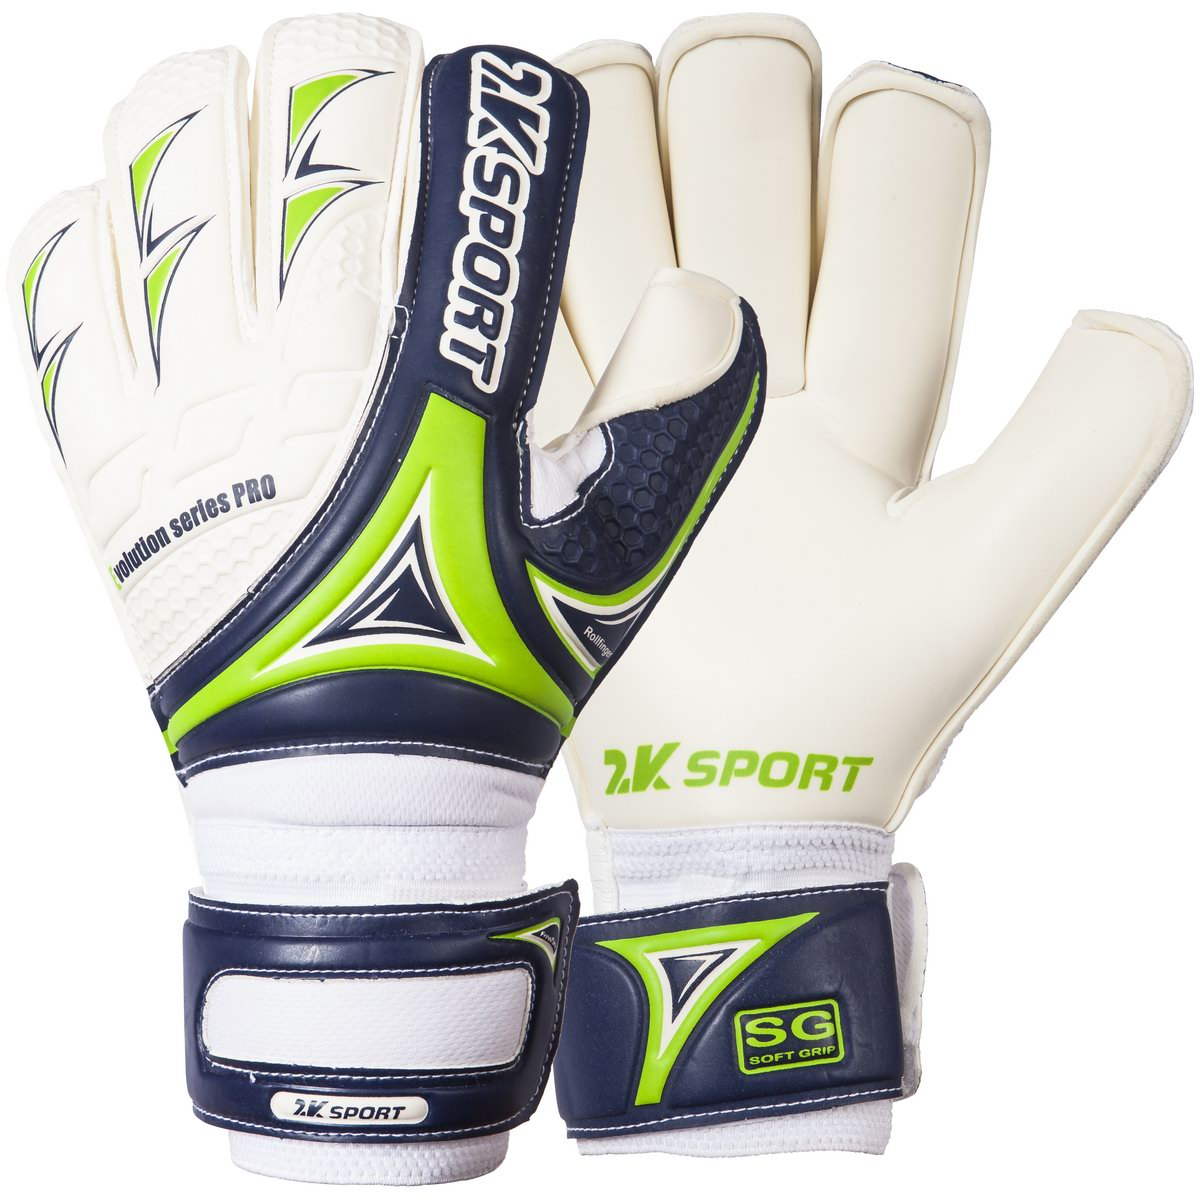 2K SPORT EVOLUTION PRO 124916 navy/light-green